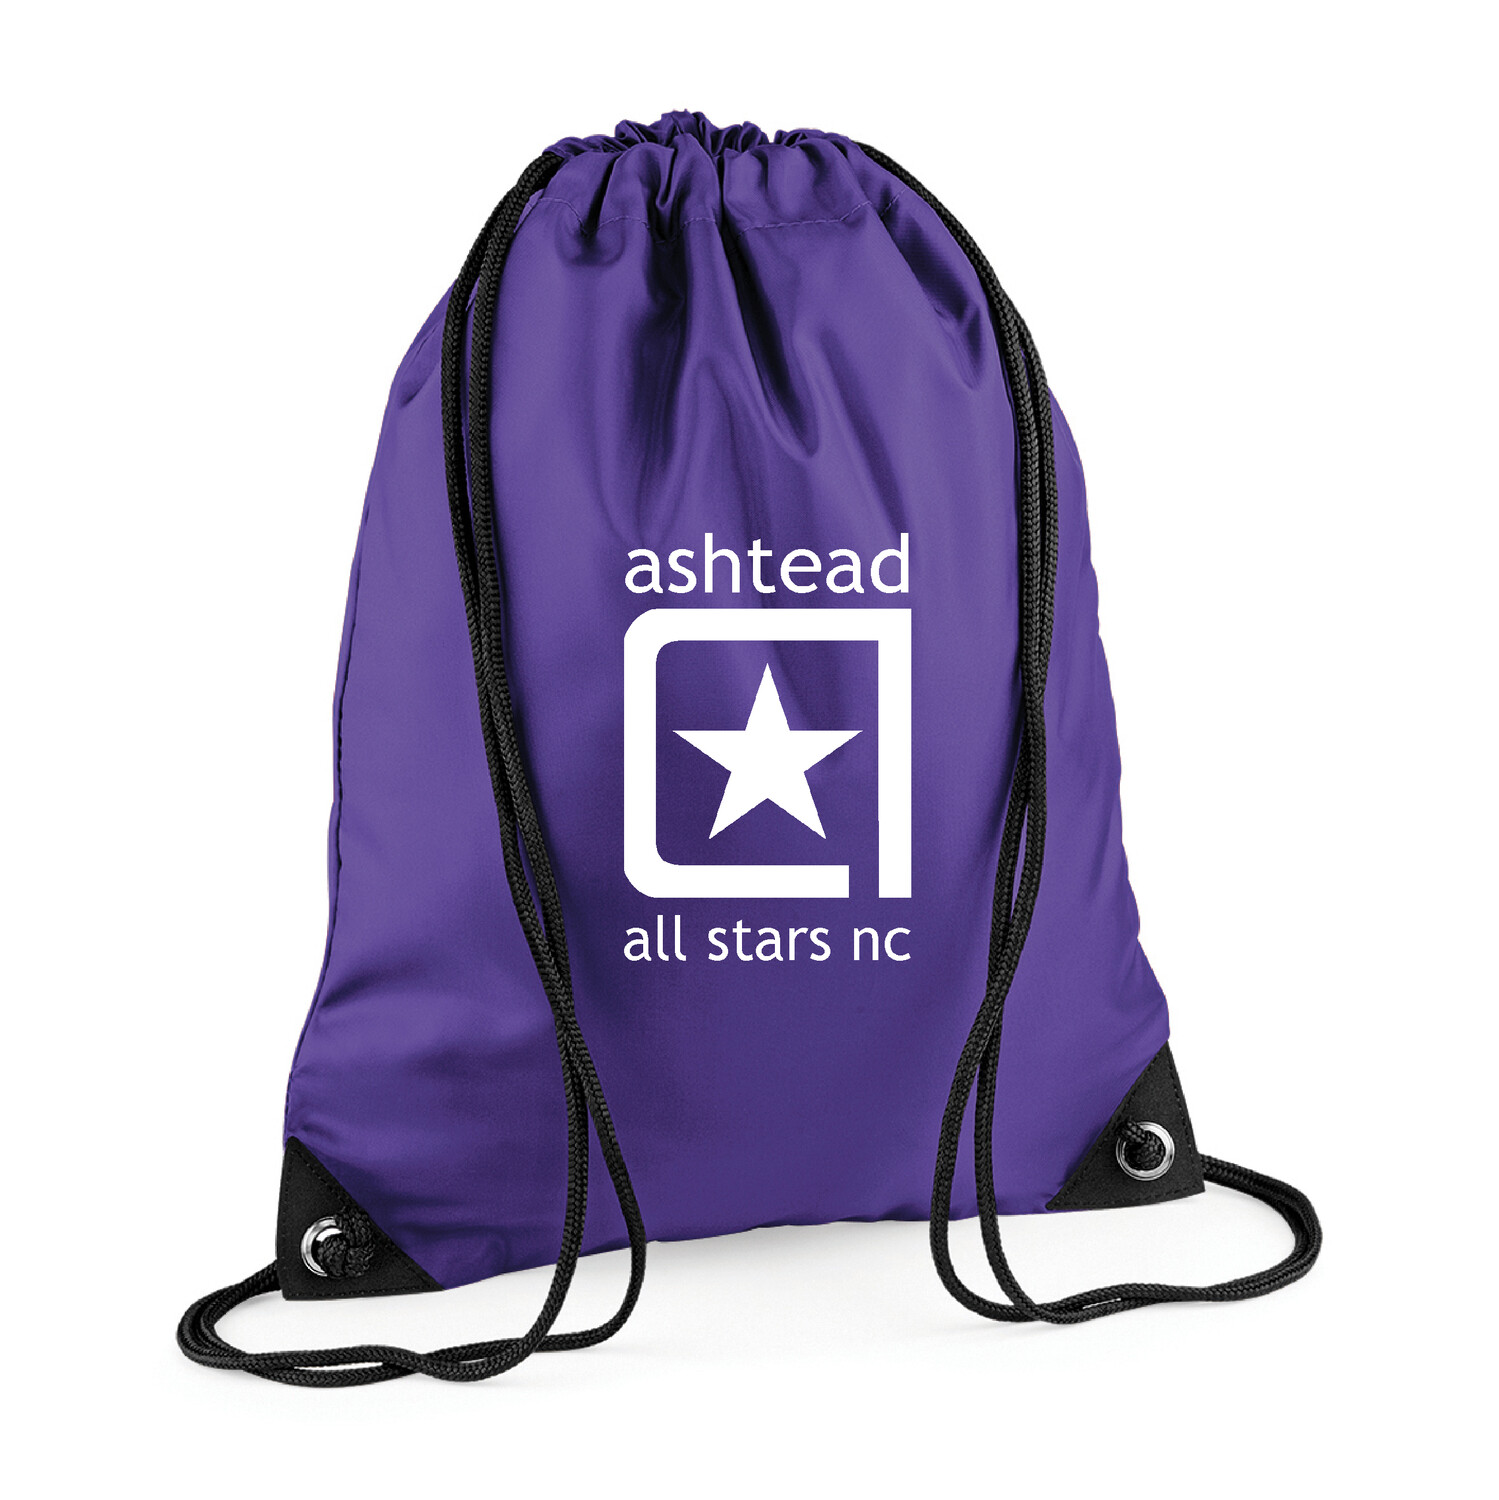 Ashtead All Stars Gym Sack - One free with every order!